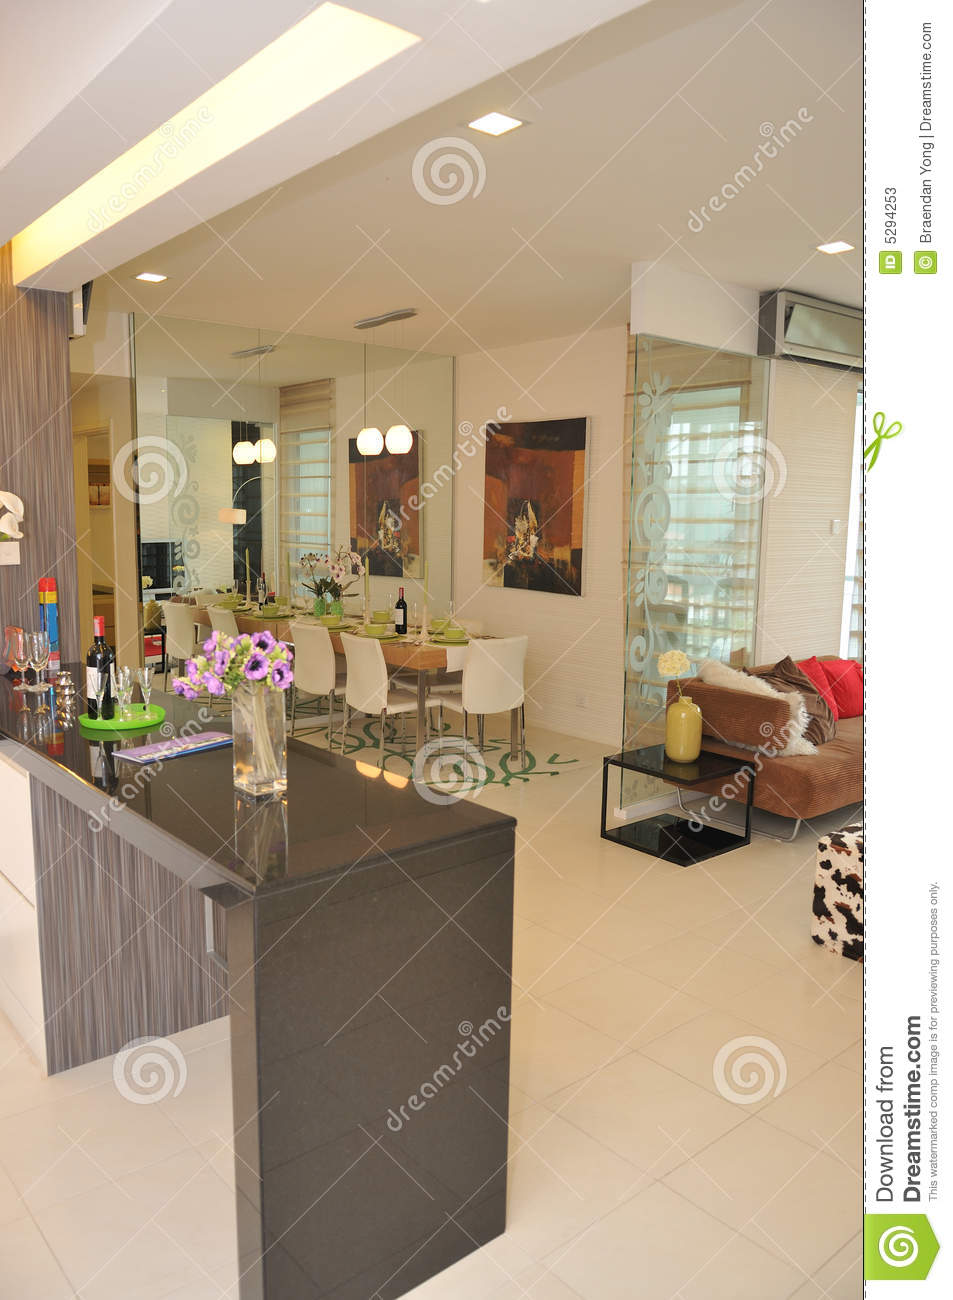 Interior decoration series 6 stock photos image 5294253 for Teng yong interior design decoration